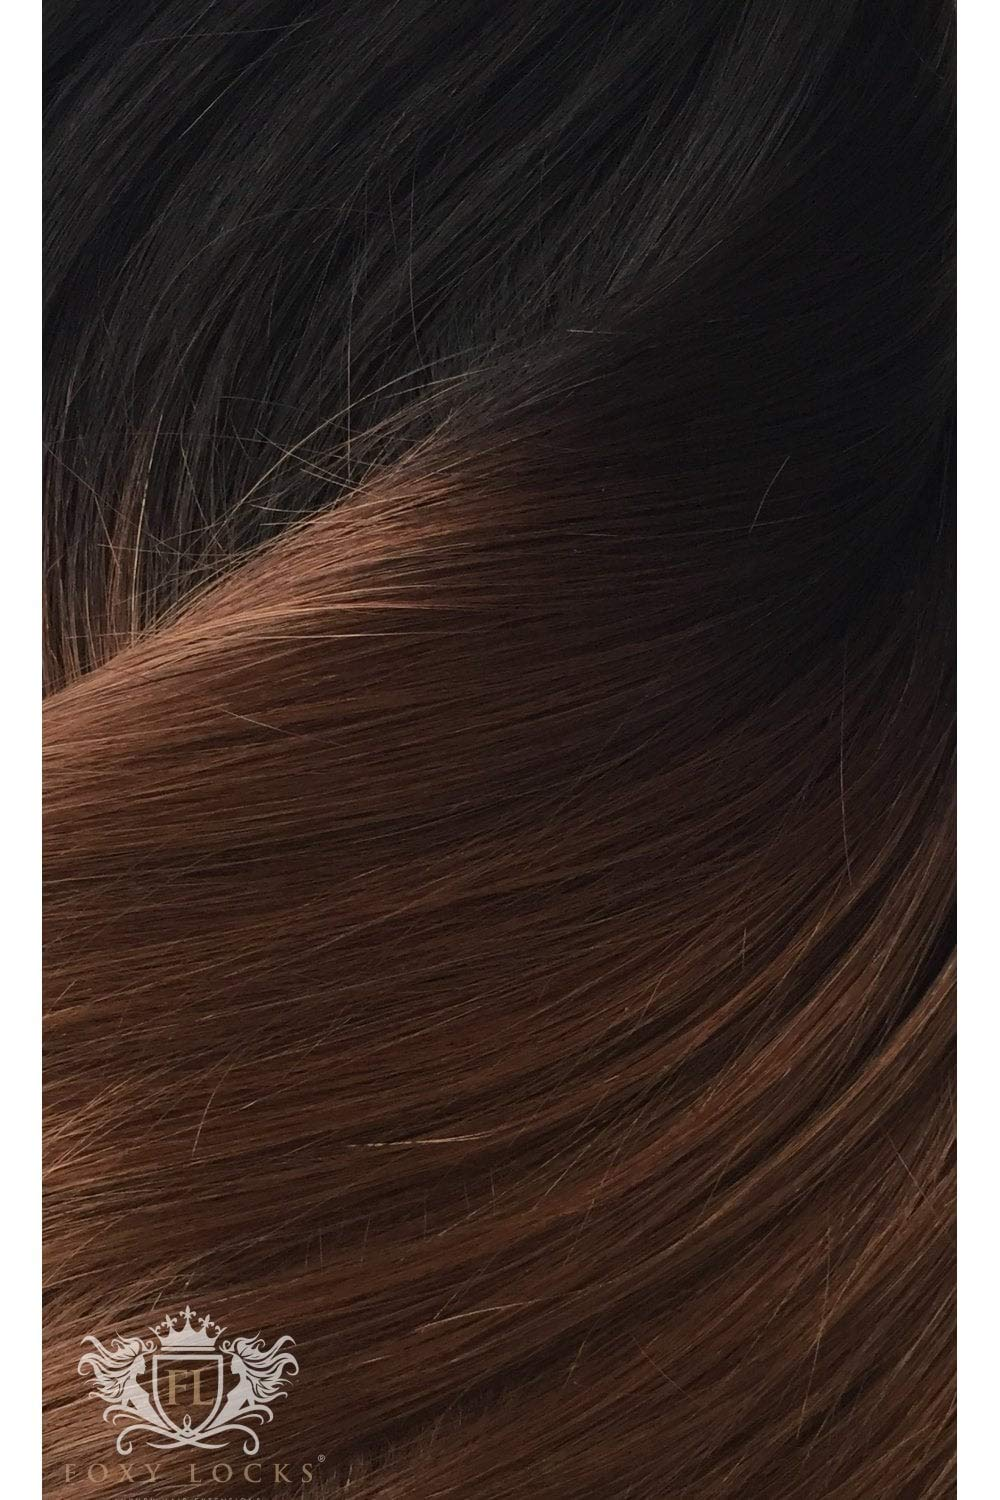 ESPRESSO OMBRE - Rare WRAP PONYTAIL CLIP IN 16 HAIR 12 Outlet sale feature 2 EXTENSIONS